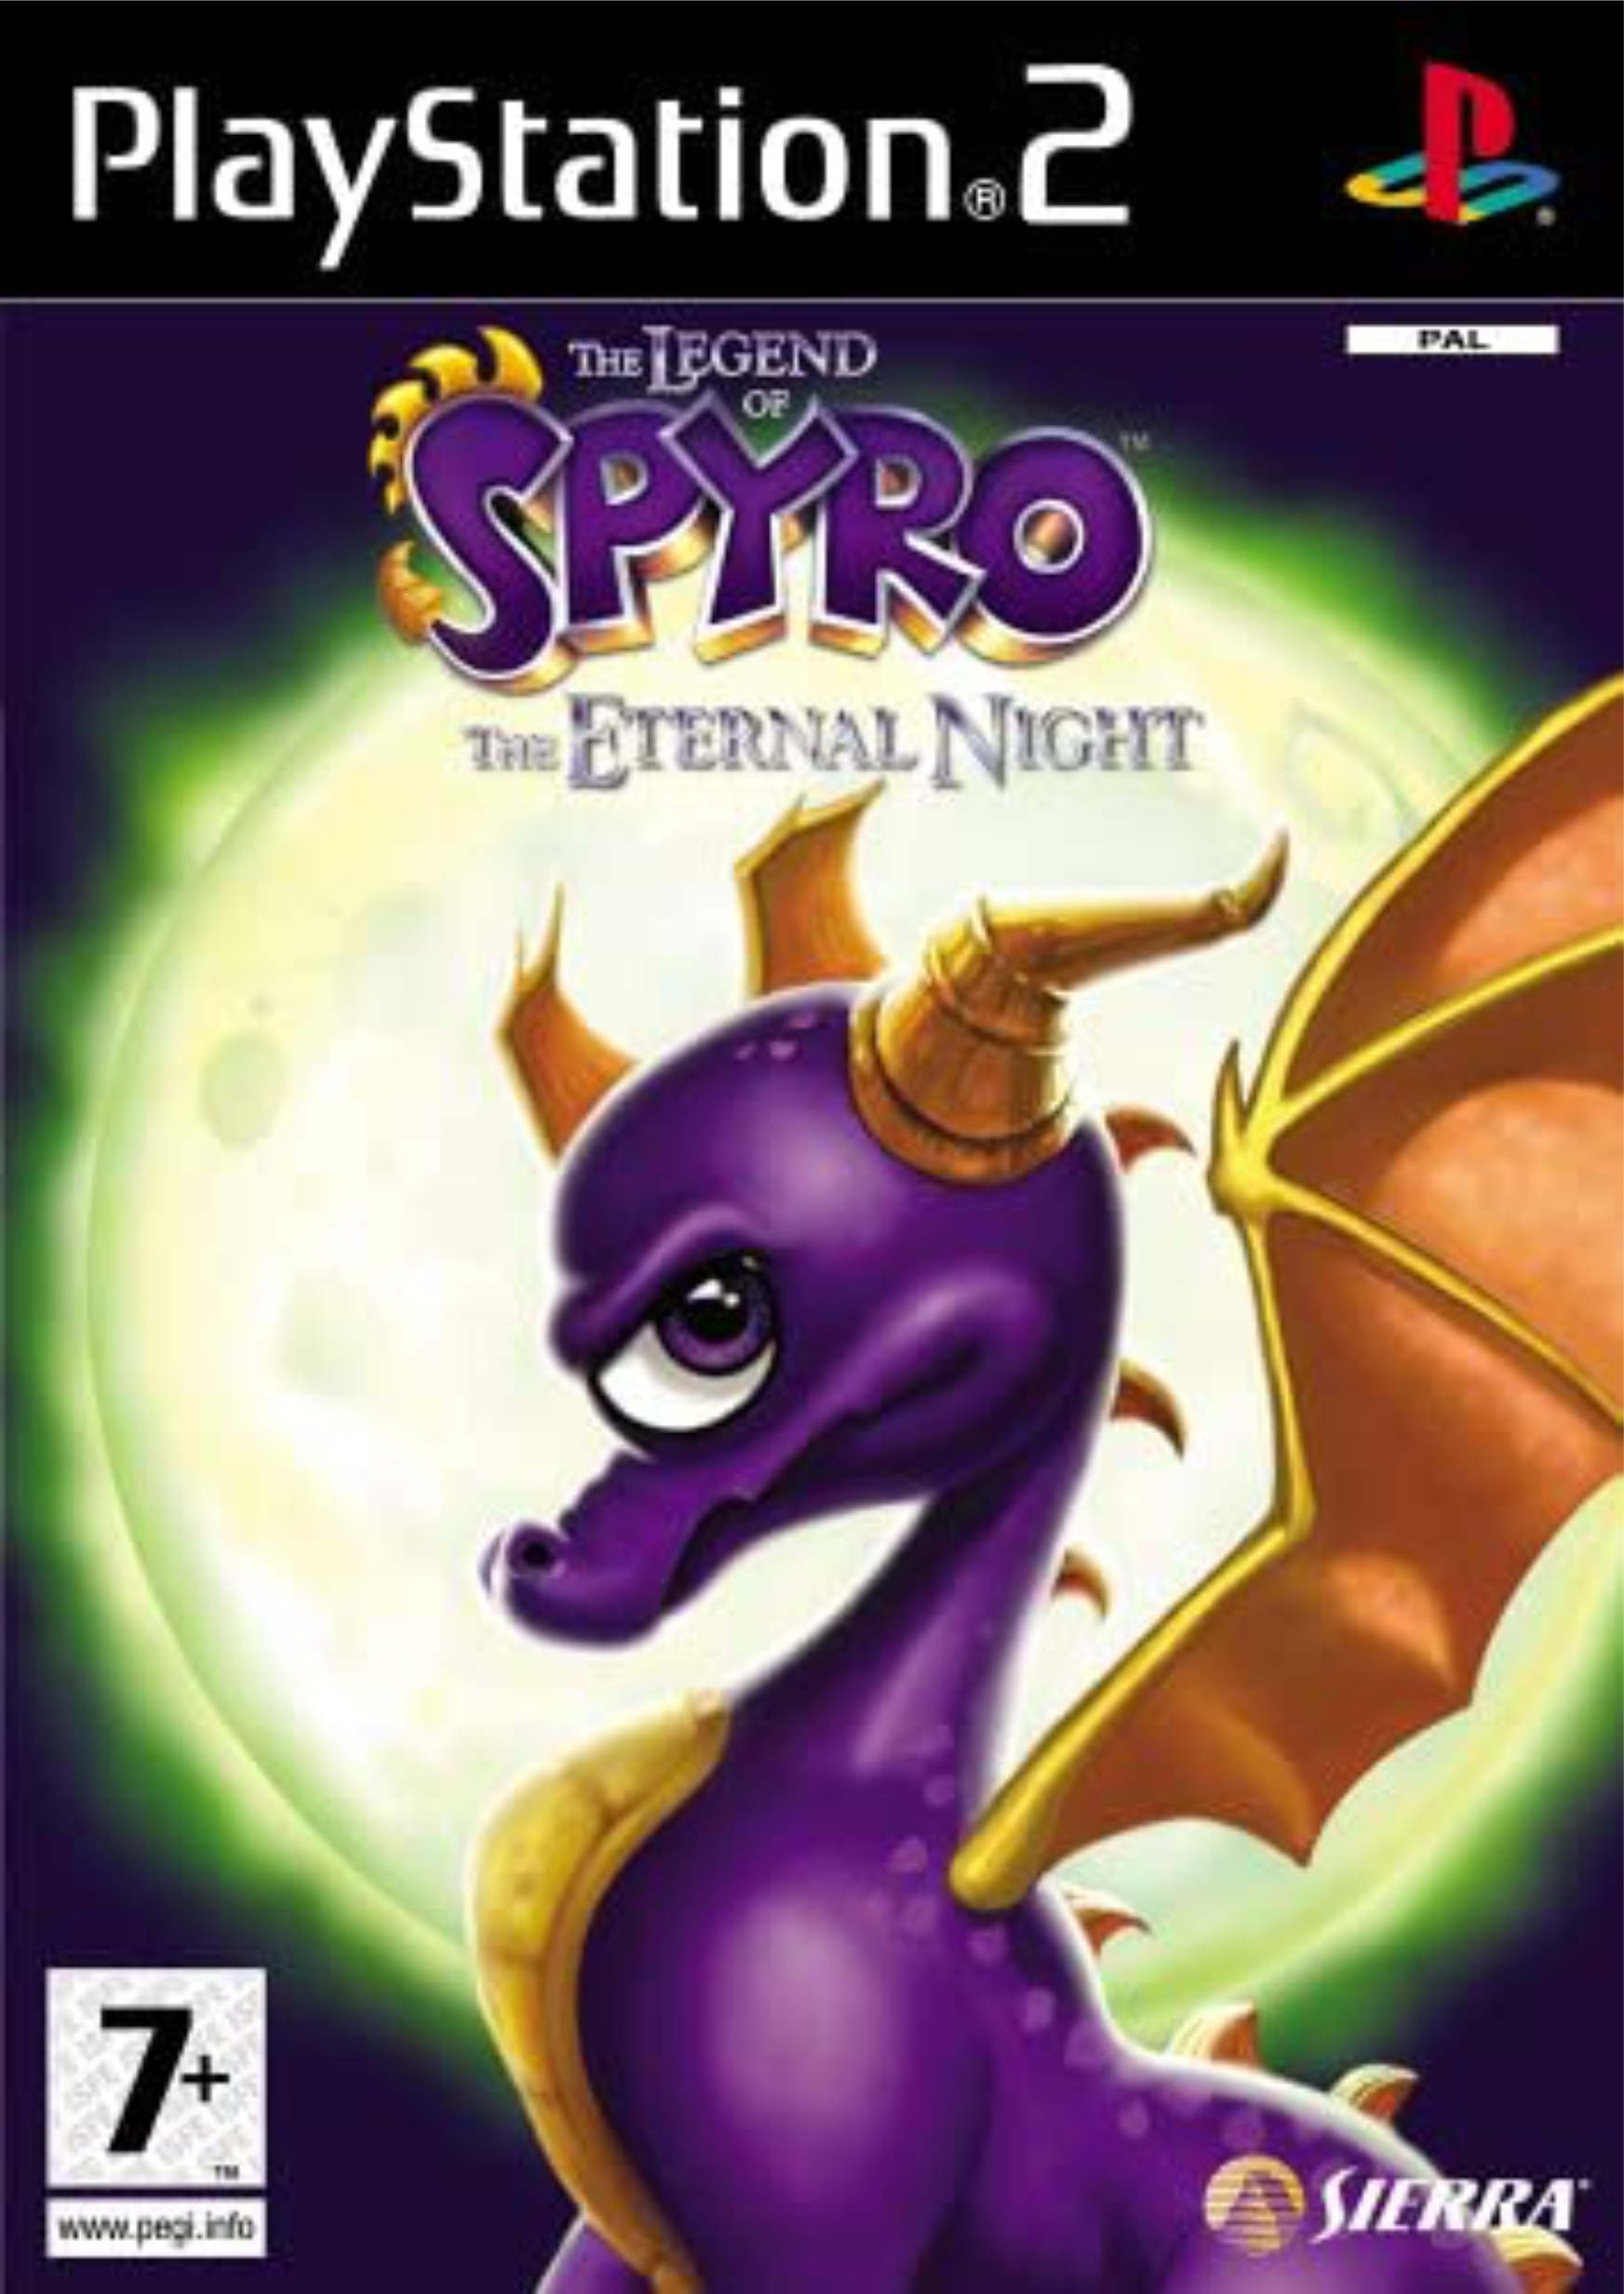 PS2 The Legend of Spyro: The Eternal Night